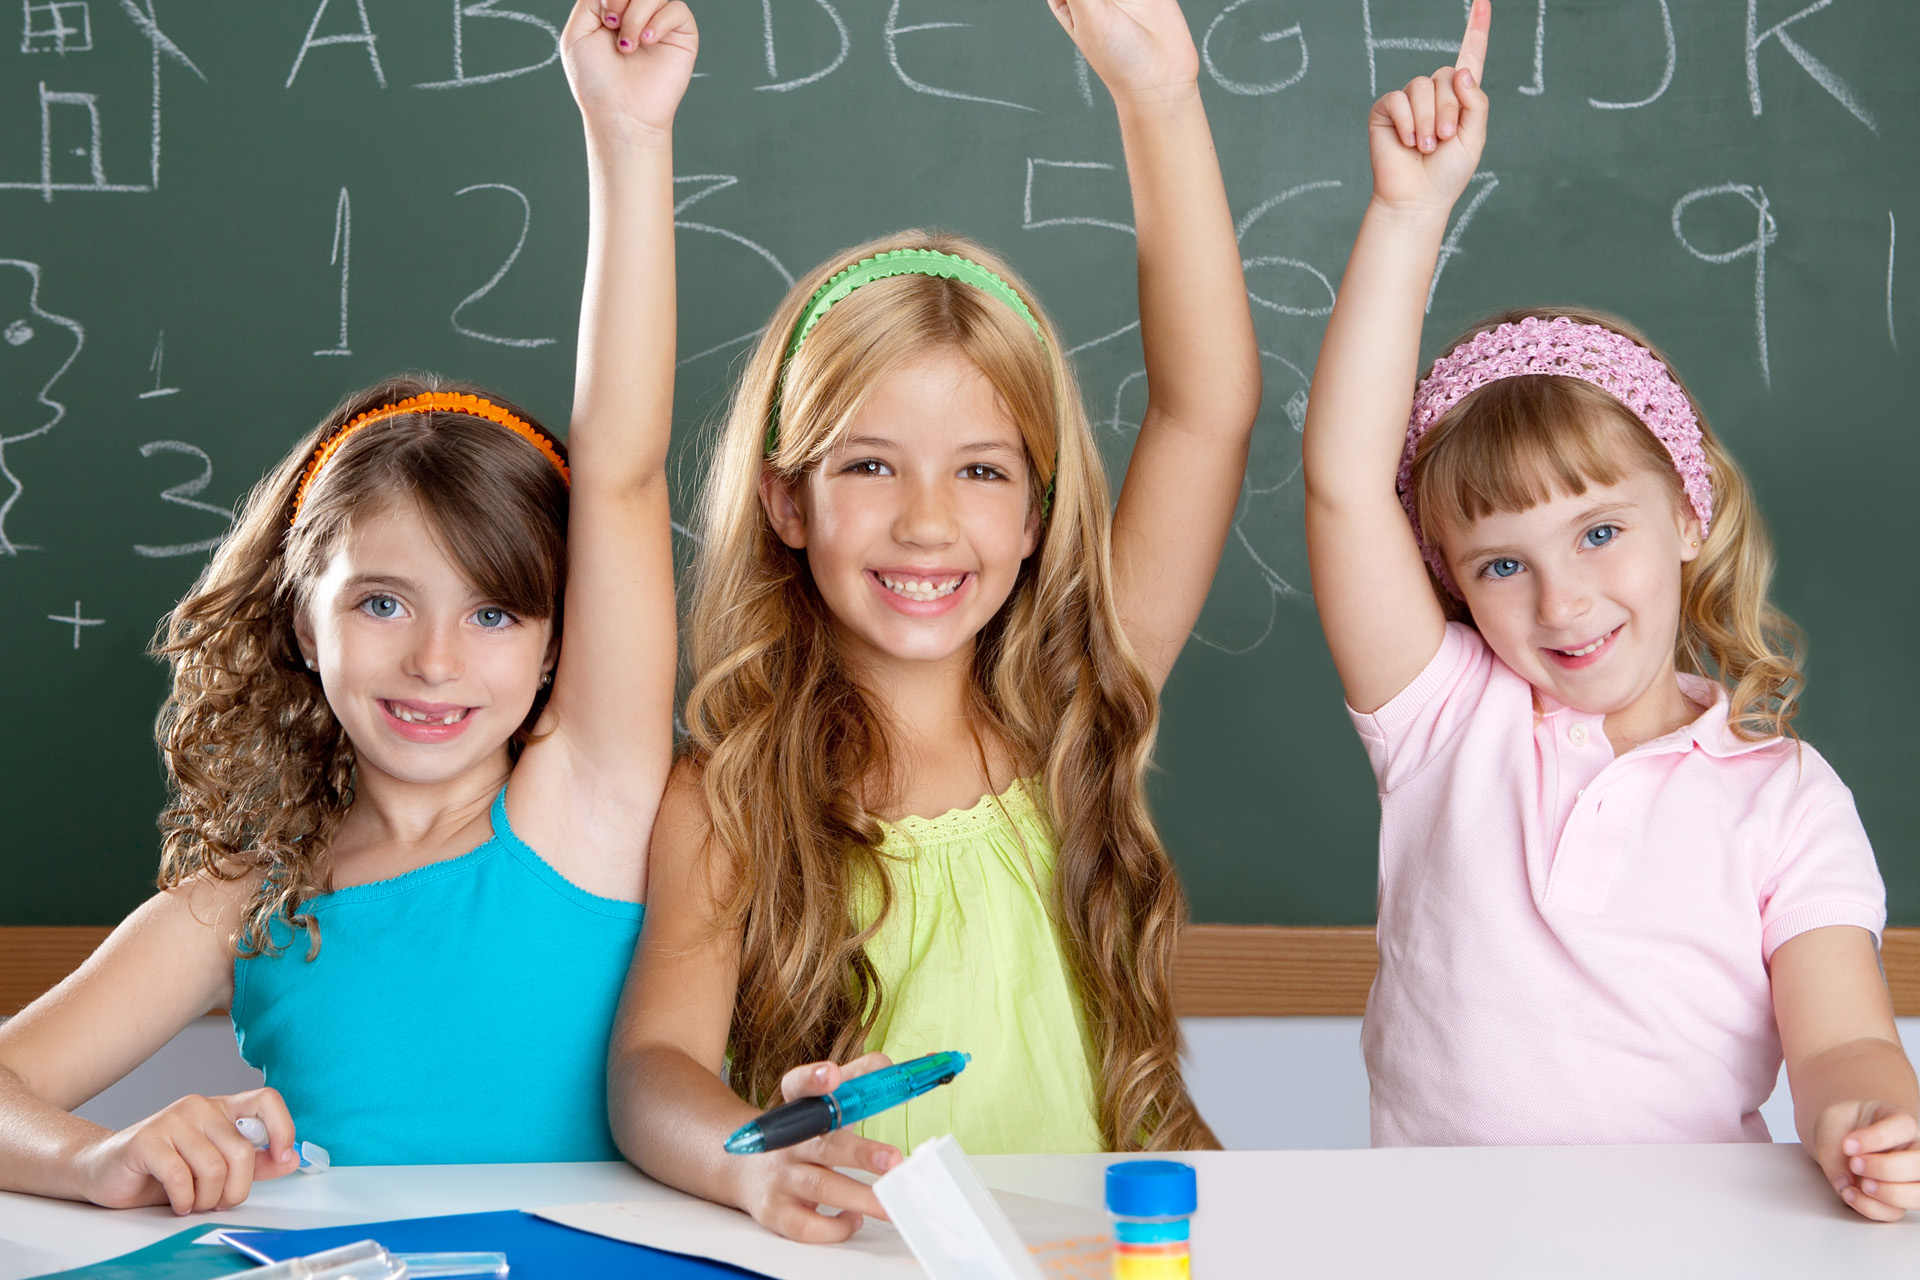 clever kids student group at school classroom raising hand as smart children